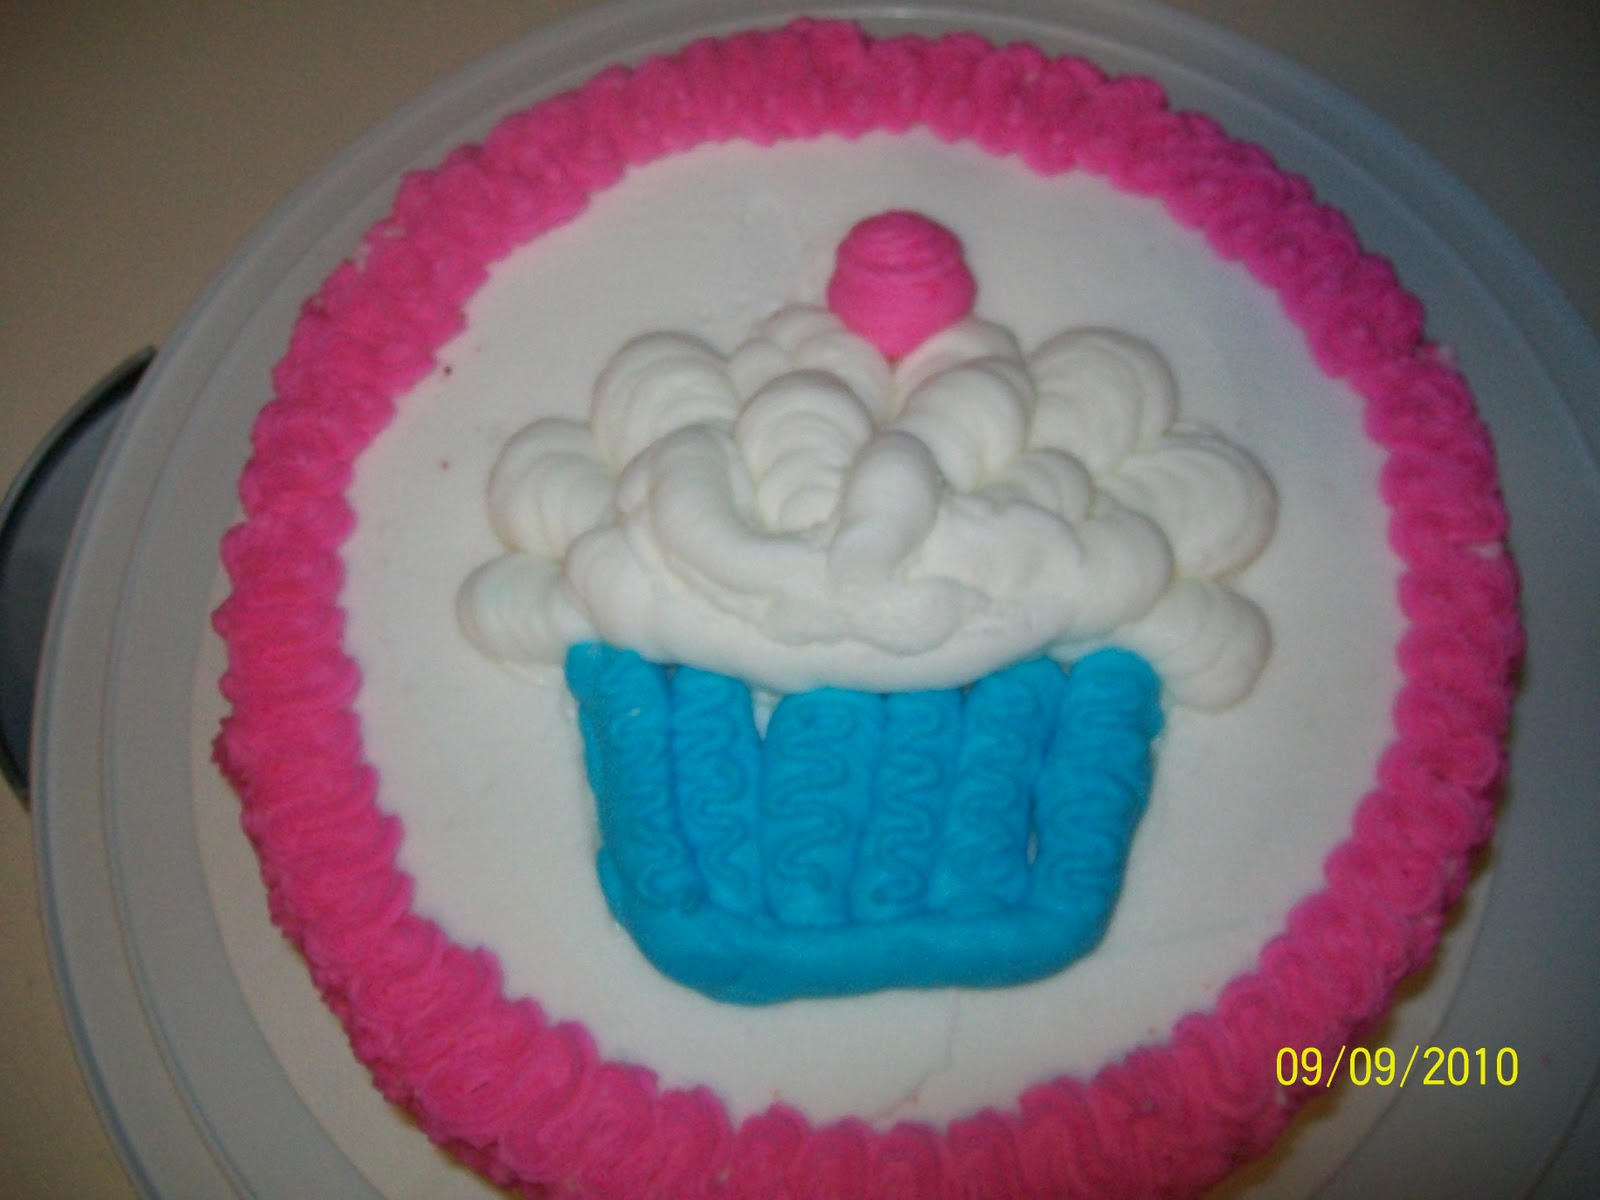 Cake Decorating The Basics : Daisy s Cakes: Basic Cake Decorating- Week 2